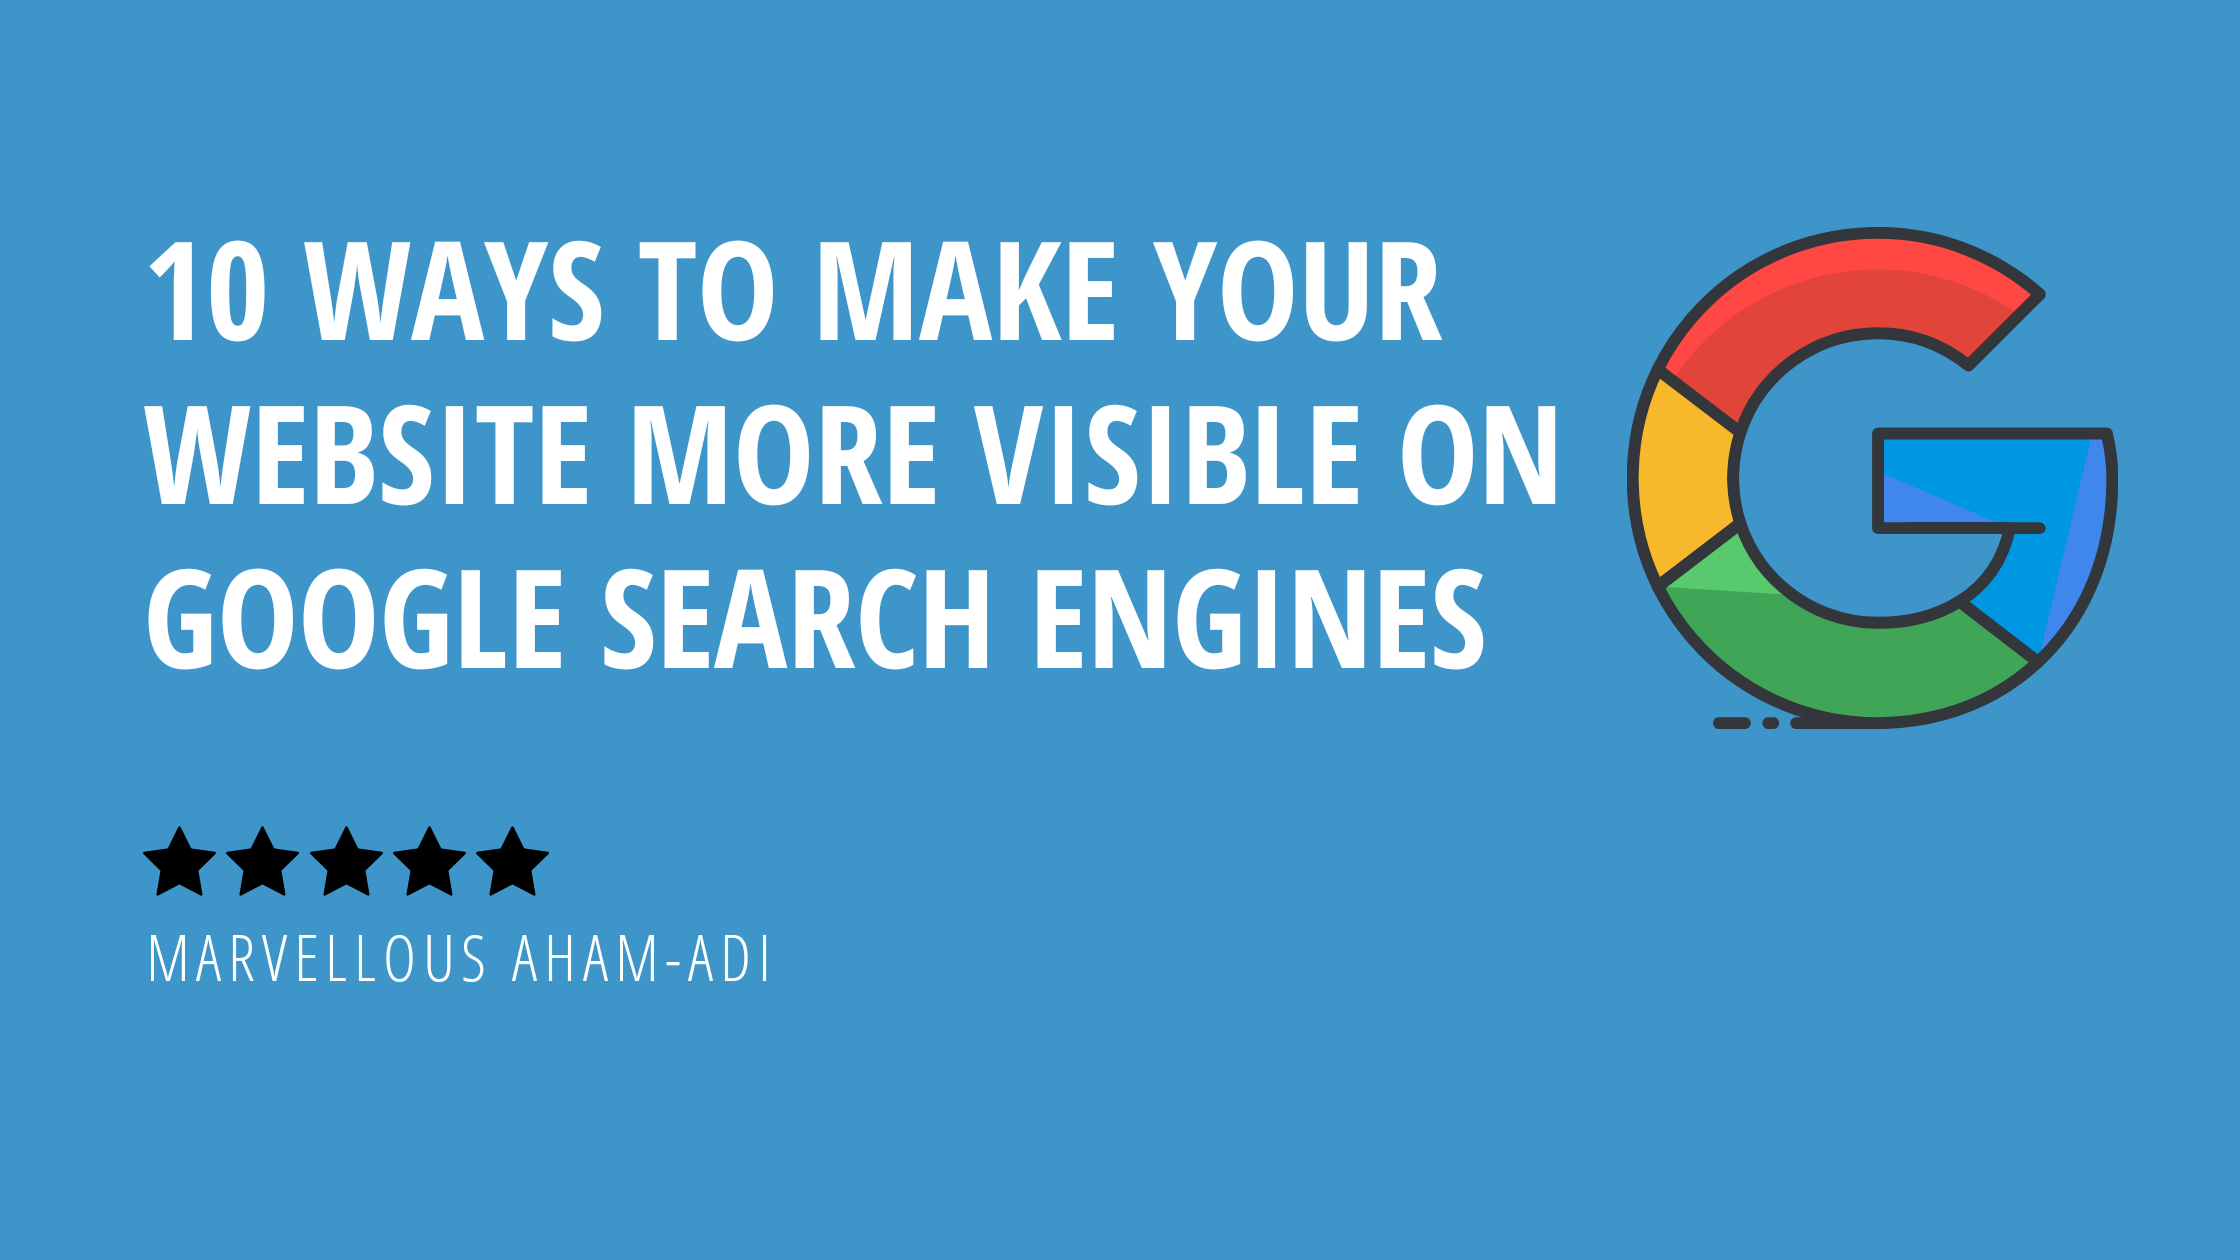 Make your website more visible on google search